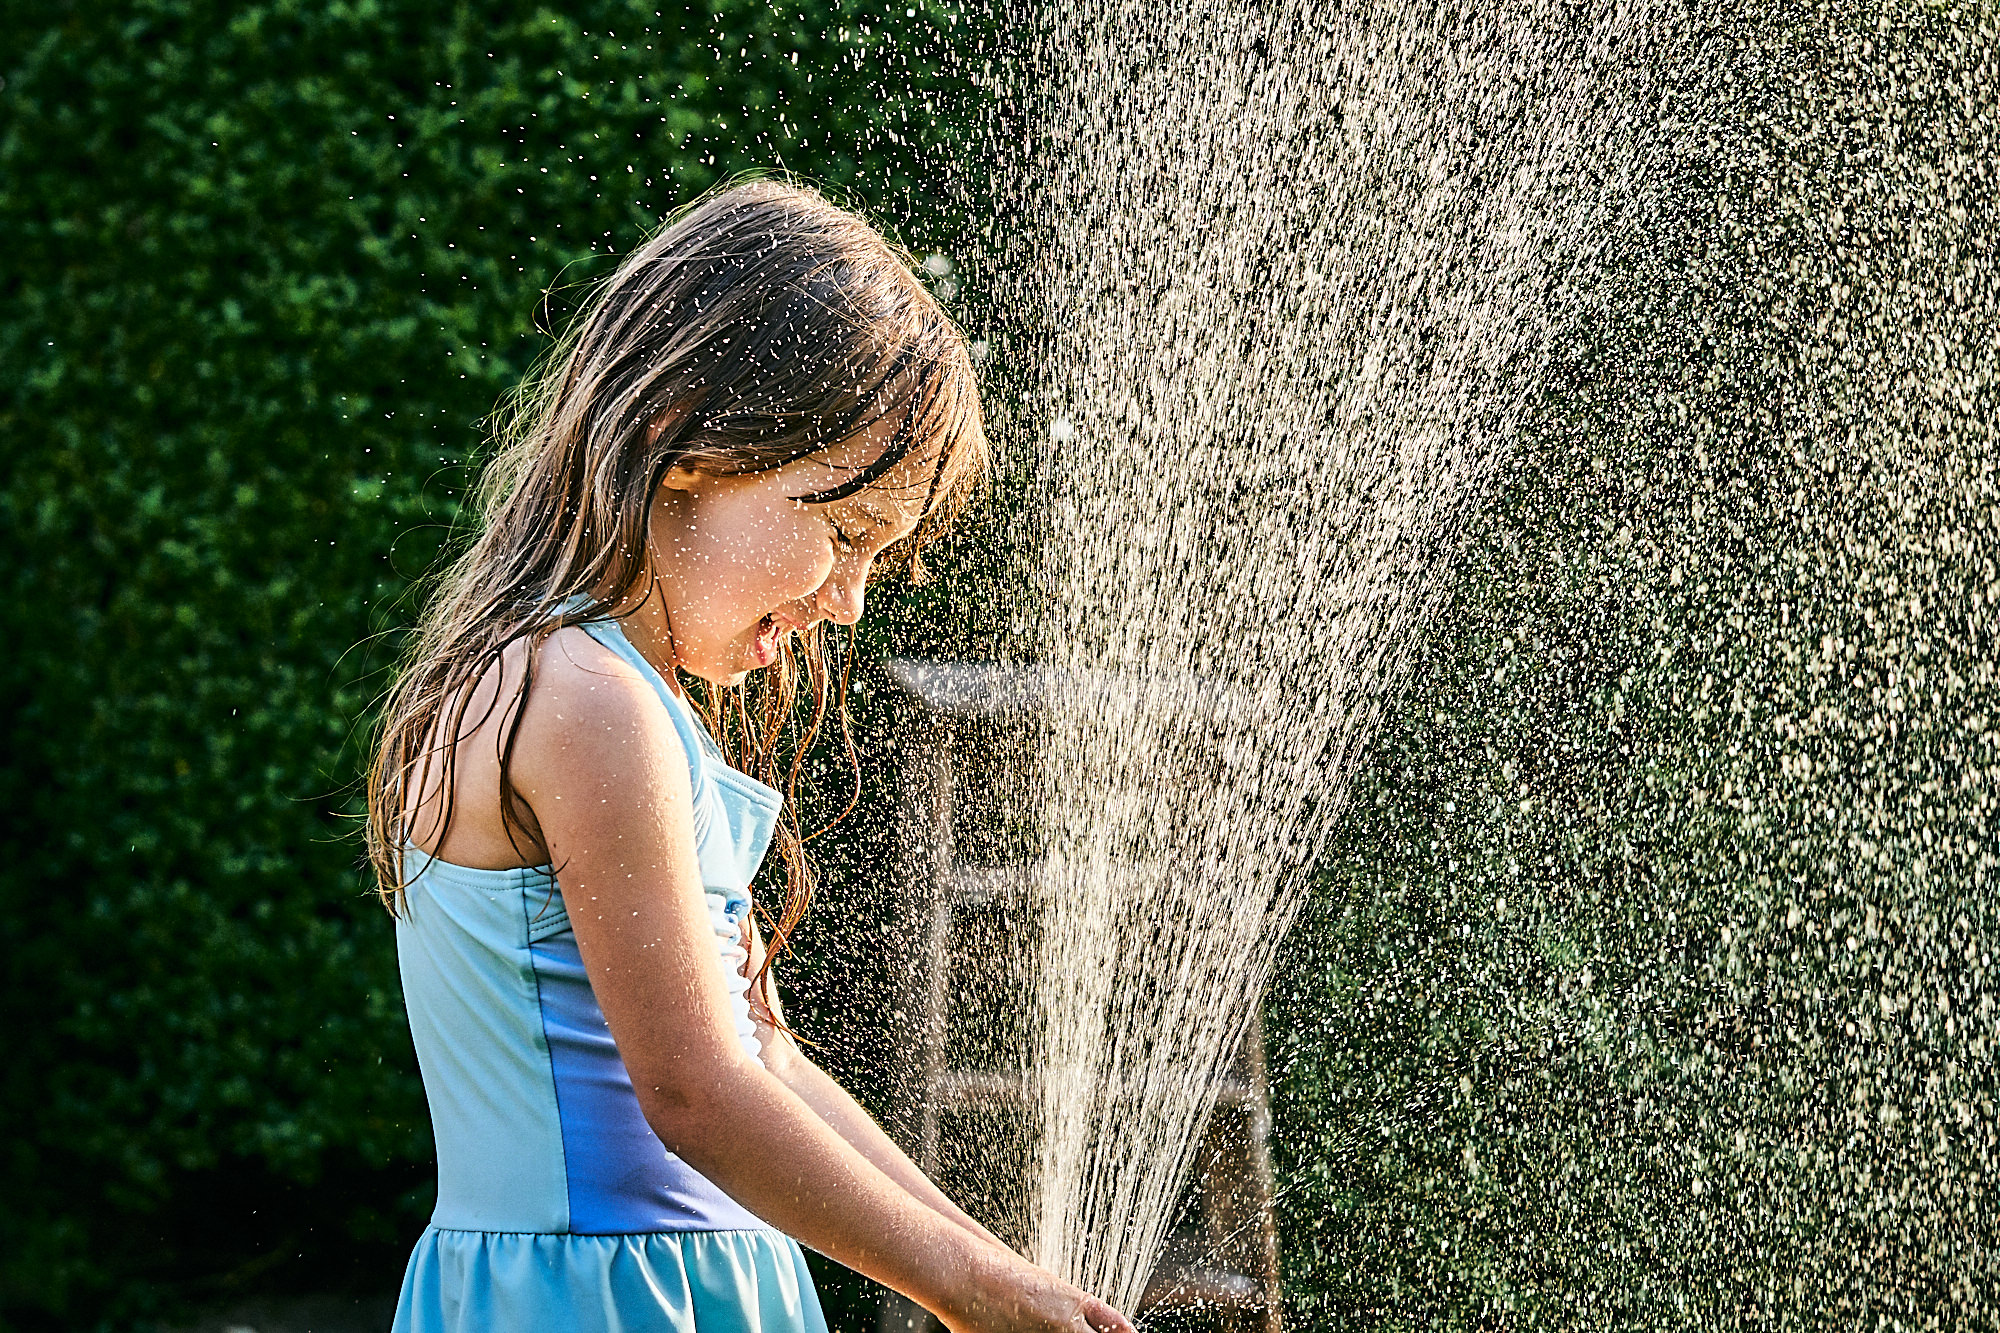 girl plays with hose in garden for photos